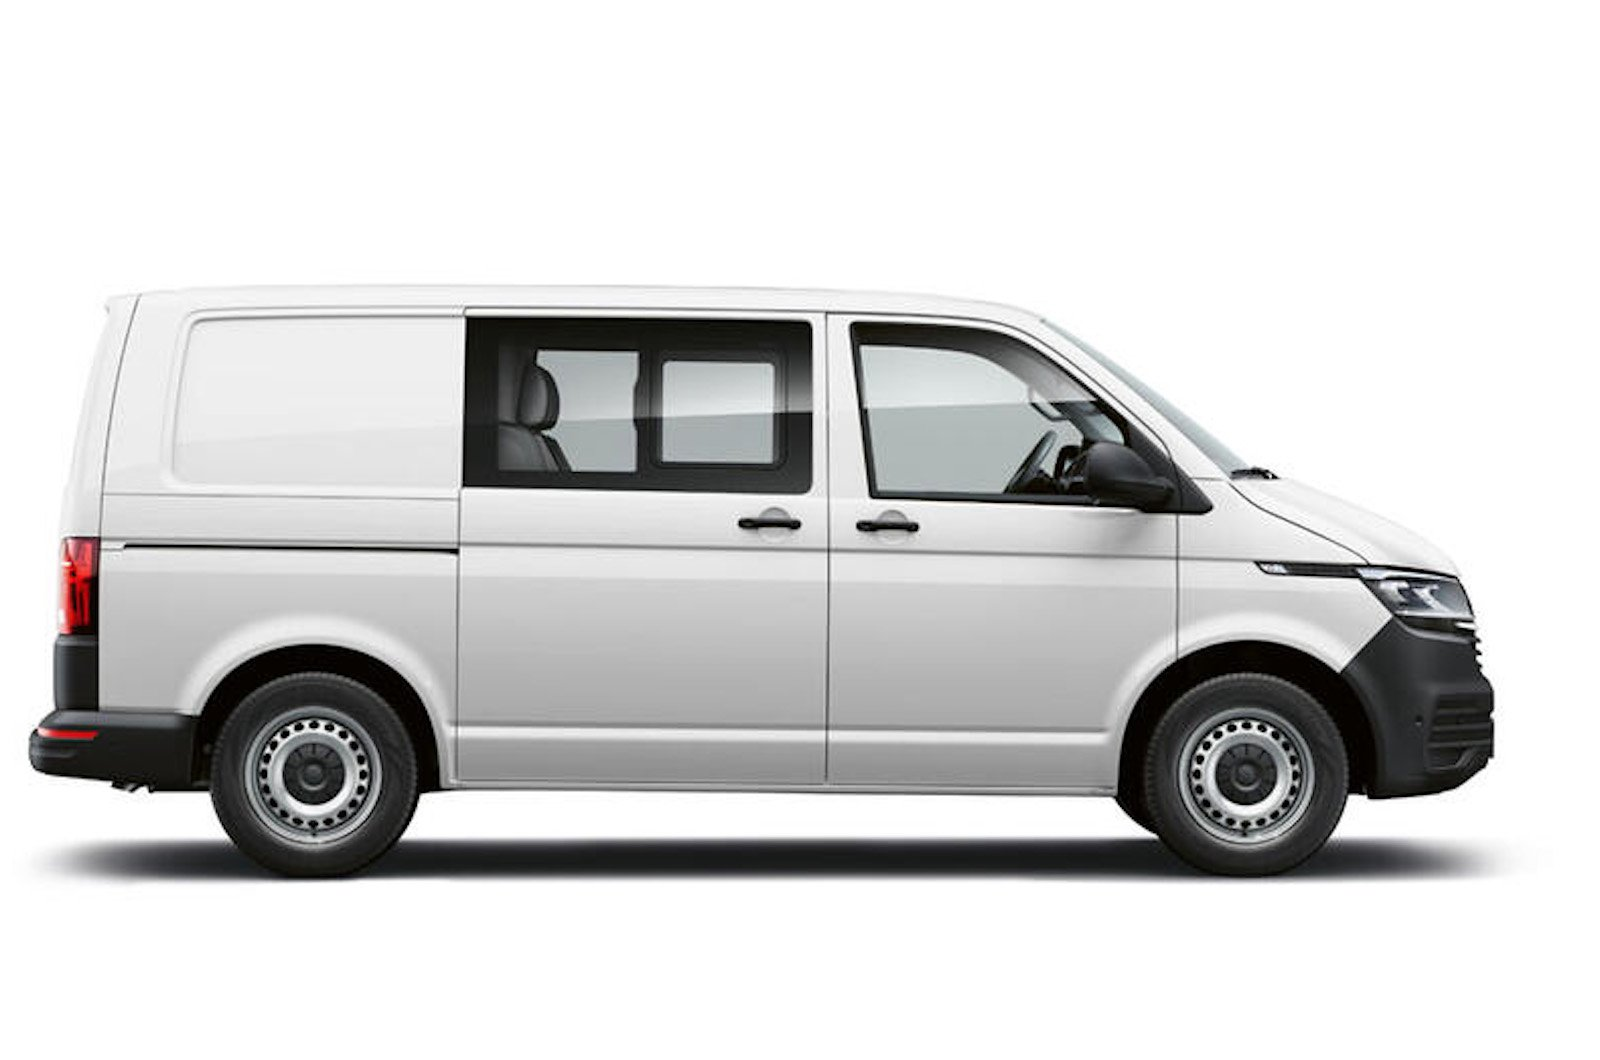 The Volkswagen Transporter 6.1 kombi offers the best blend of people and cargo